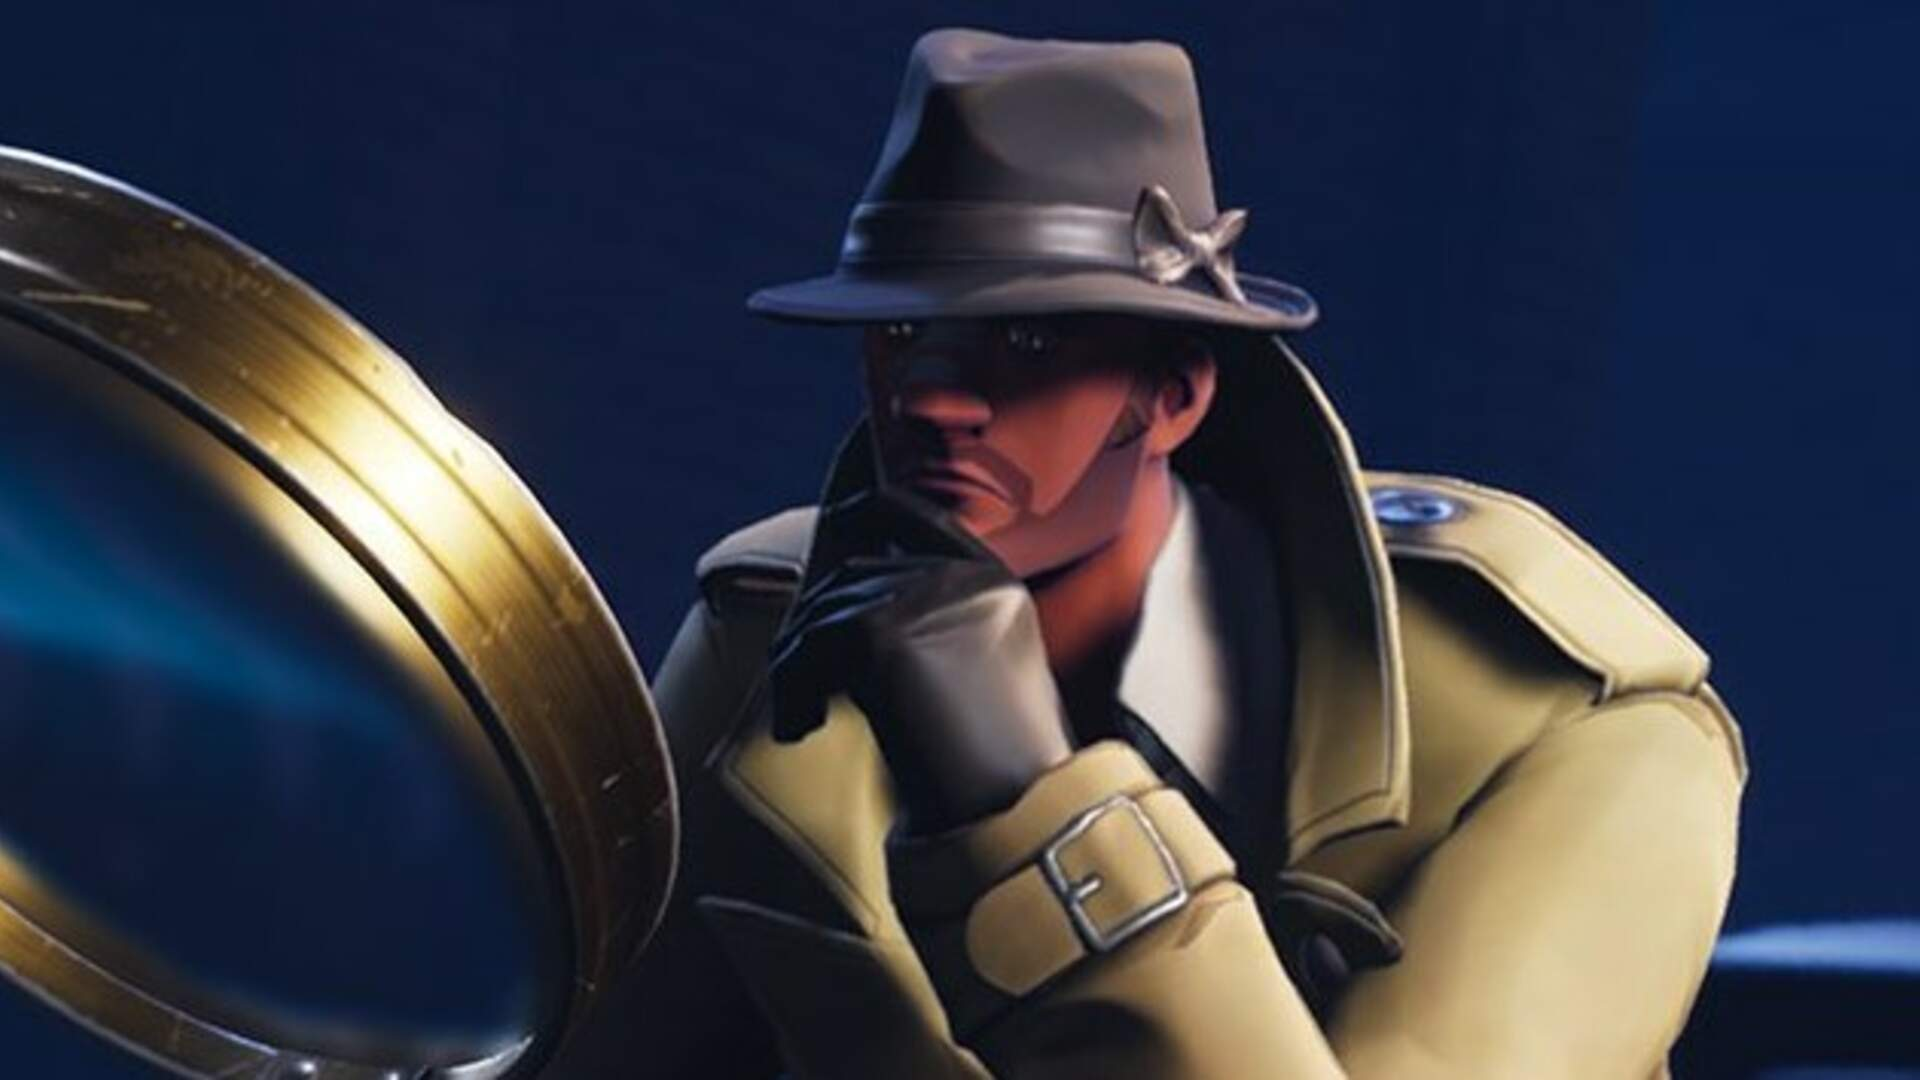 New Fortnite Hardboiled Skin Available Now, Drum Gun Coming Soon